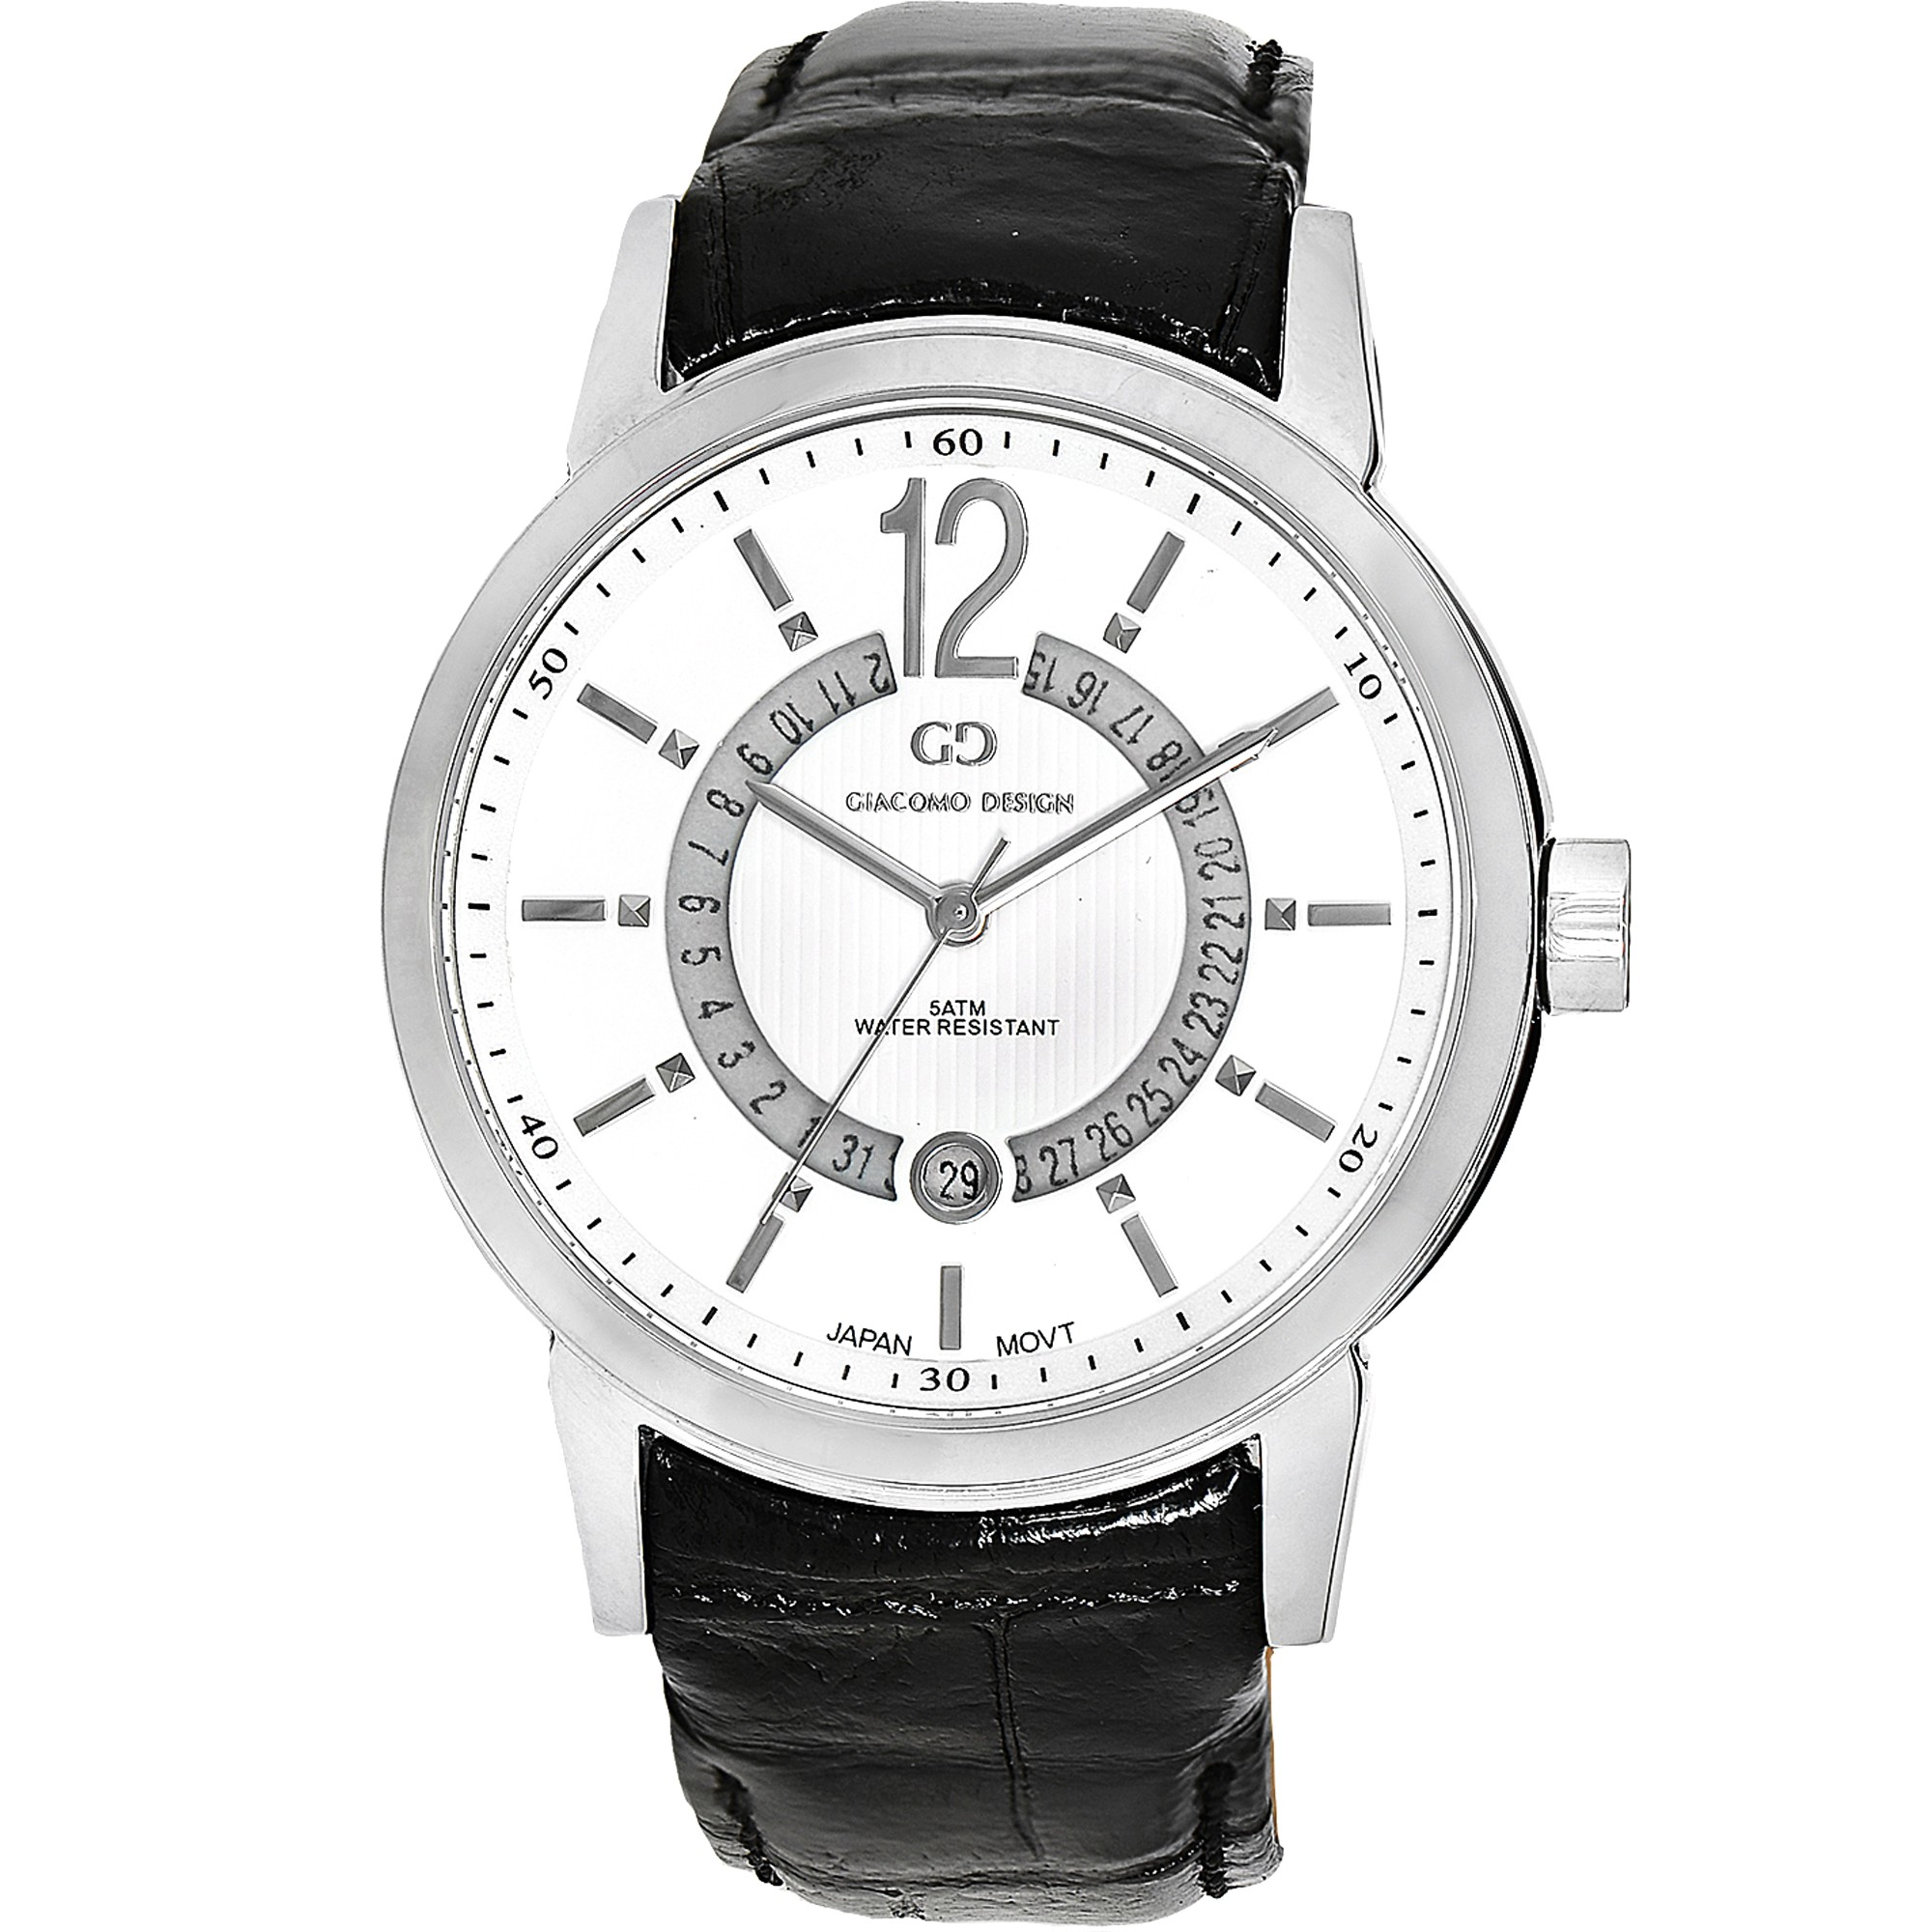 strap leather altiplano bezel in white diamond on watches with piaget round rose black gold